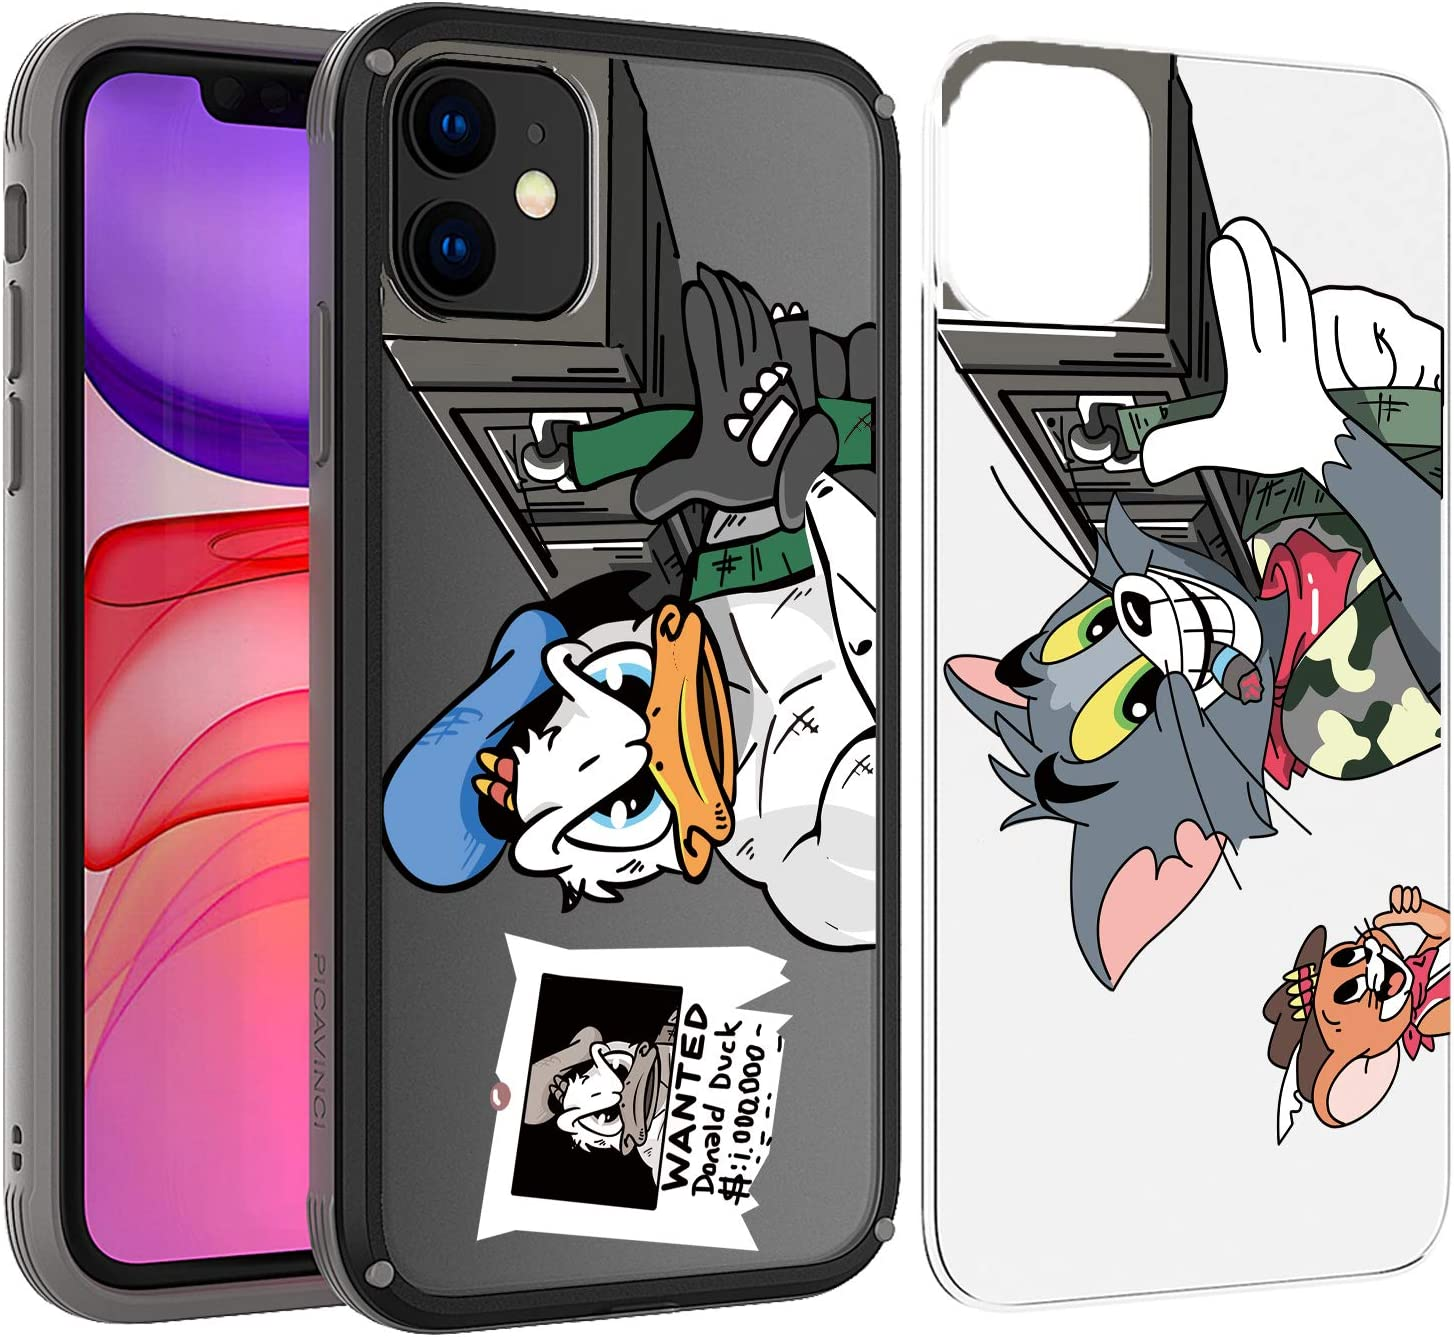 PICAVINCI SwitchME Case for iPhone 11, Arnold Donald Duck Tom Jerry Rocket Launcher Funny Black Clear Matte Protective Cover